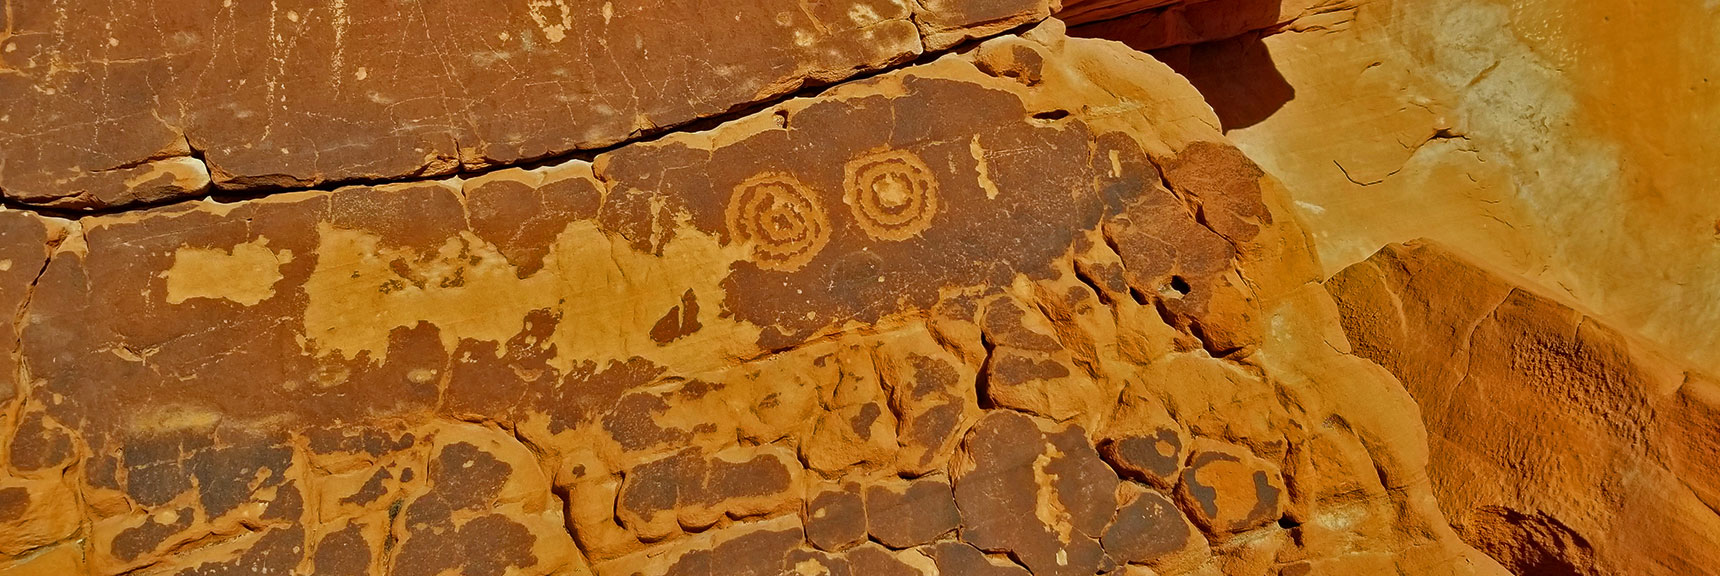 Petroglyphs or Graffiti at the Rainbow Vista Trailhead in Valley of Fire State Park, Nevada?